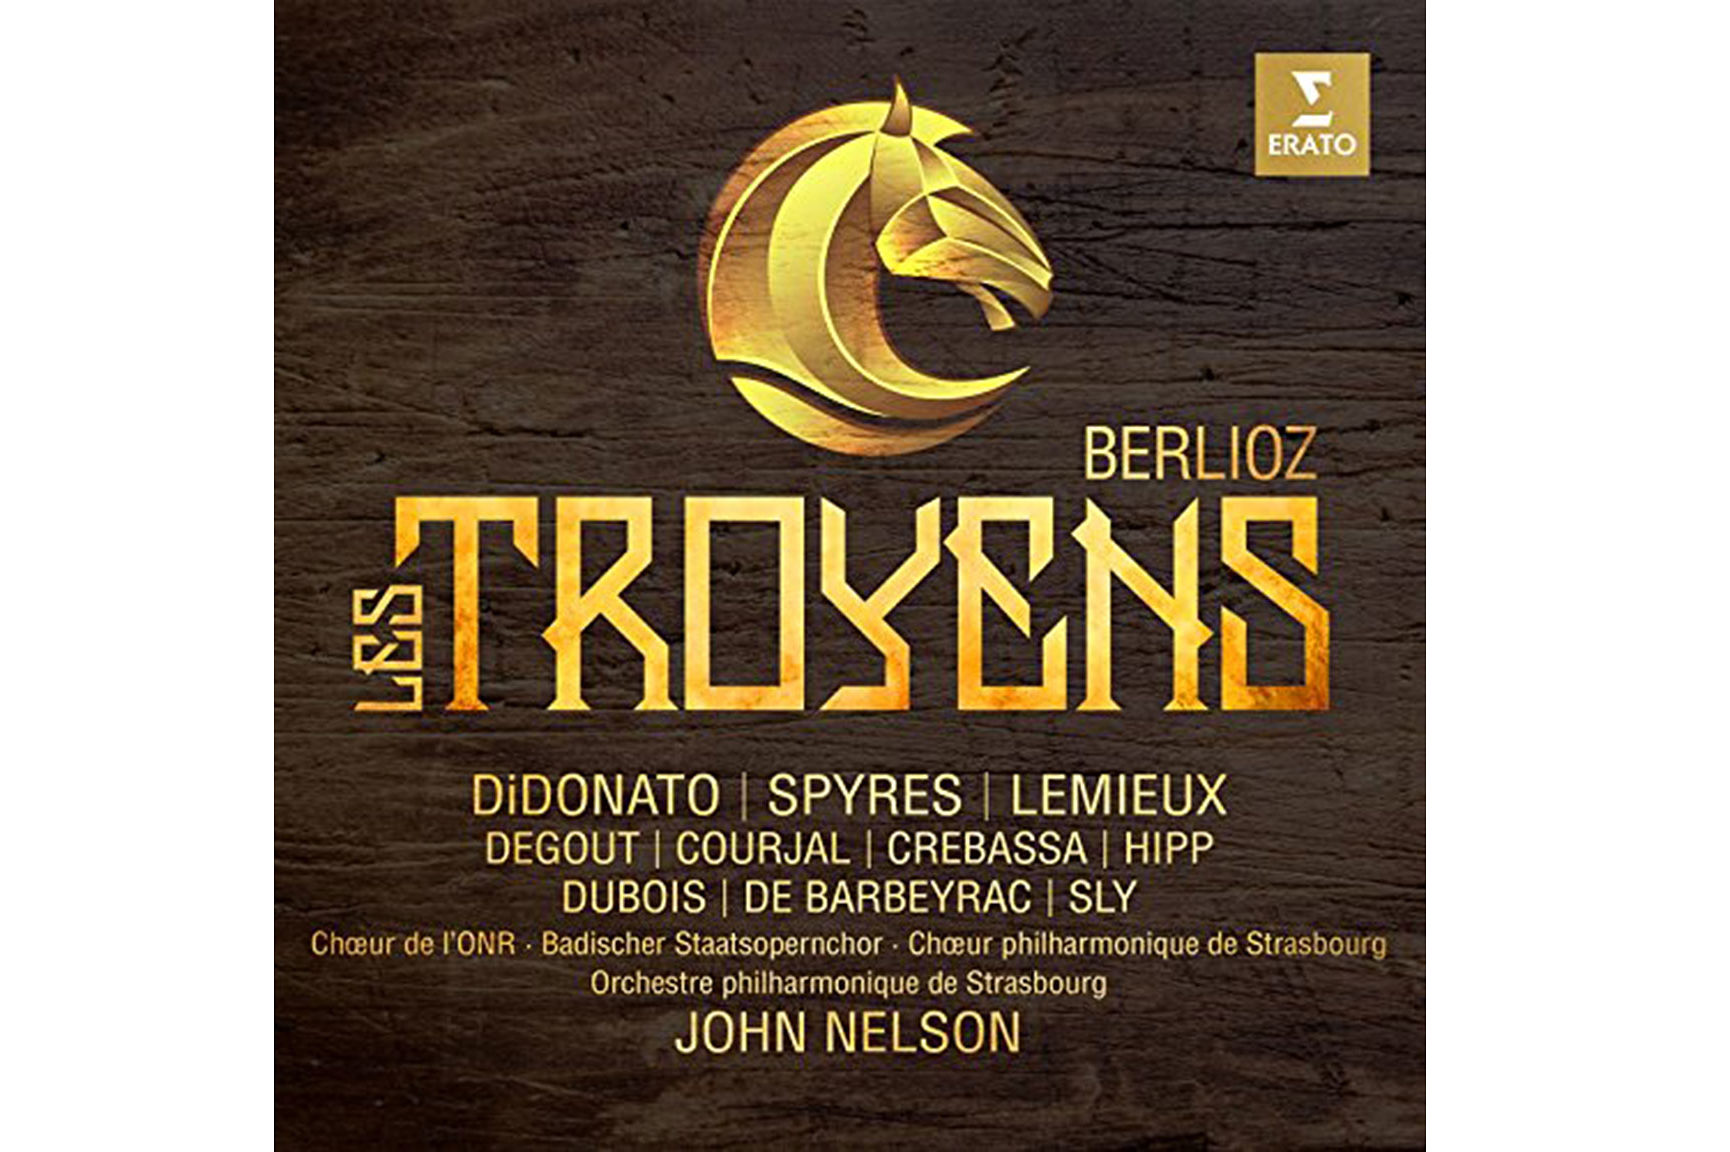 Launch of Warner recording of Berlioz's Les Troyens, conducted by John Nelson 1